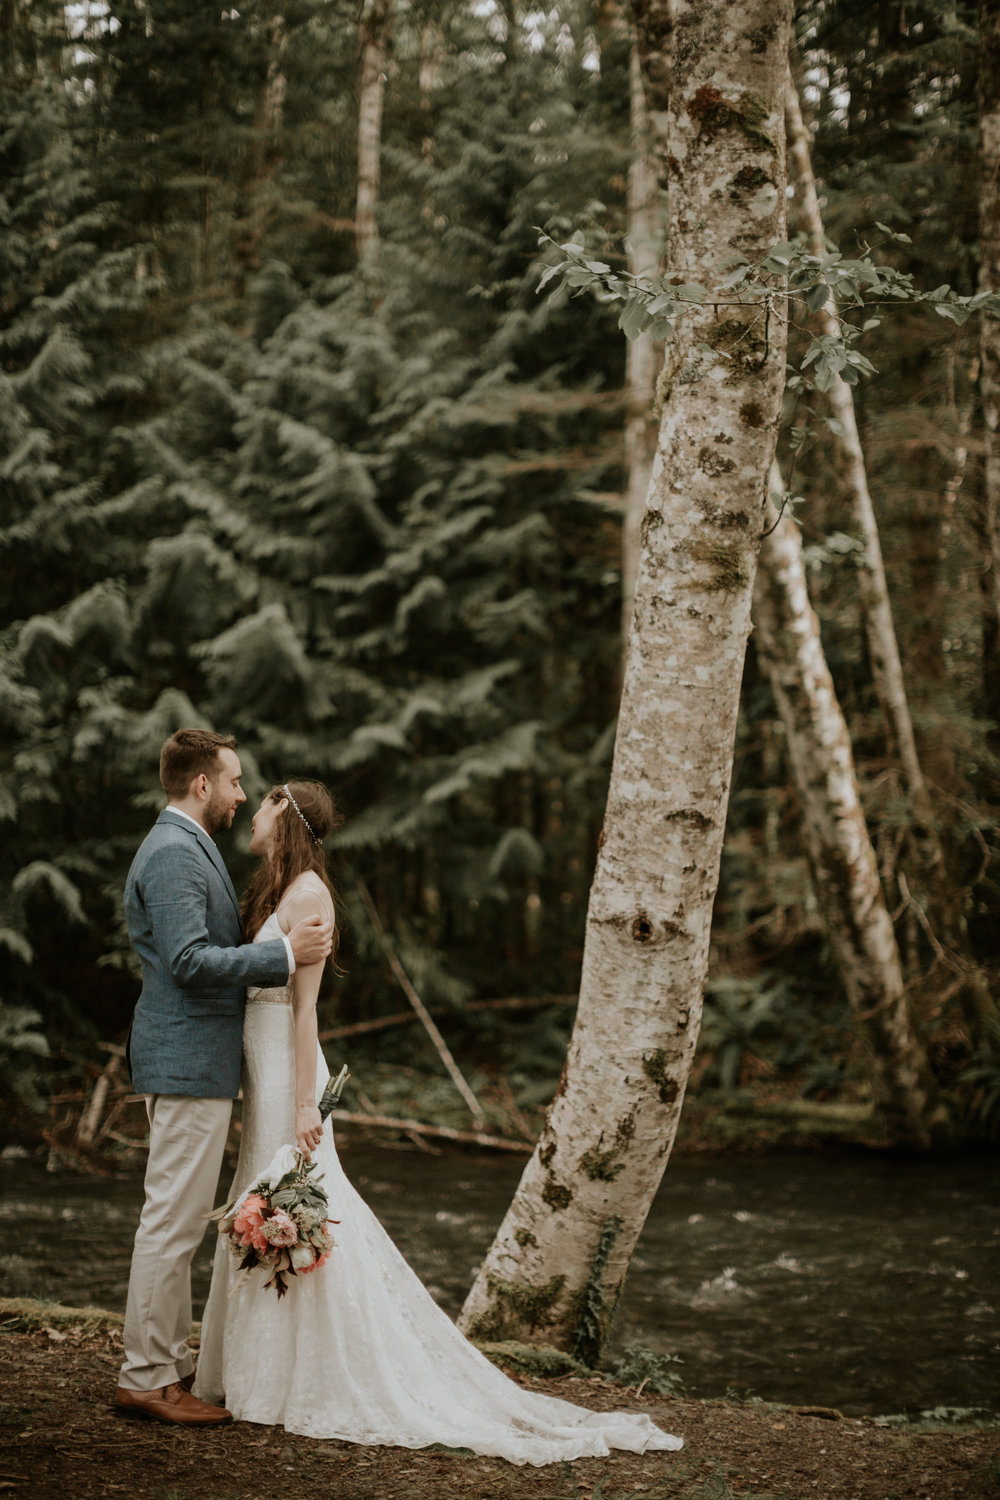 PNW-elopement-wedding-engagement-olympic national park-port angeles-hurricane ridge-lake crescent-kayla dawn photography- photographer-photography-kayladawnphoto-268.jpg